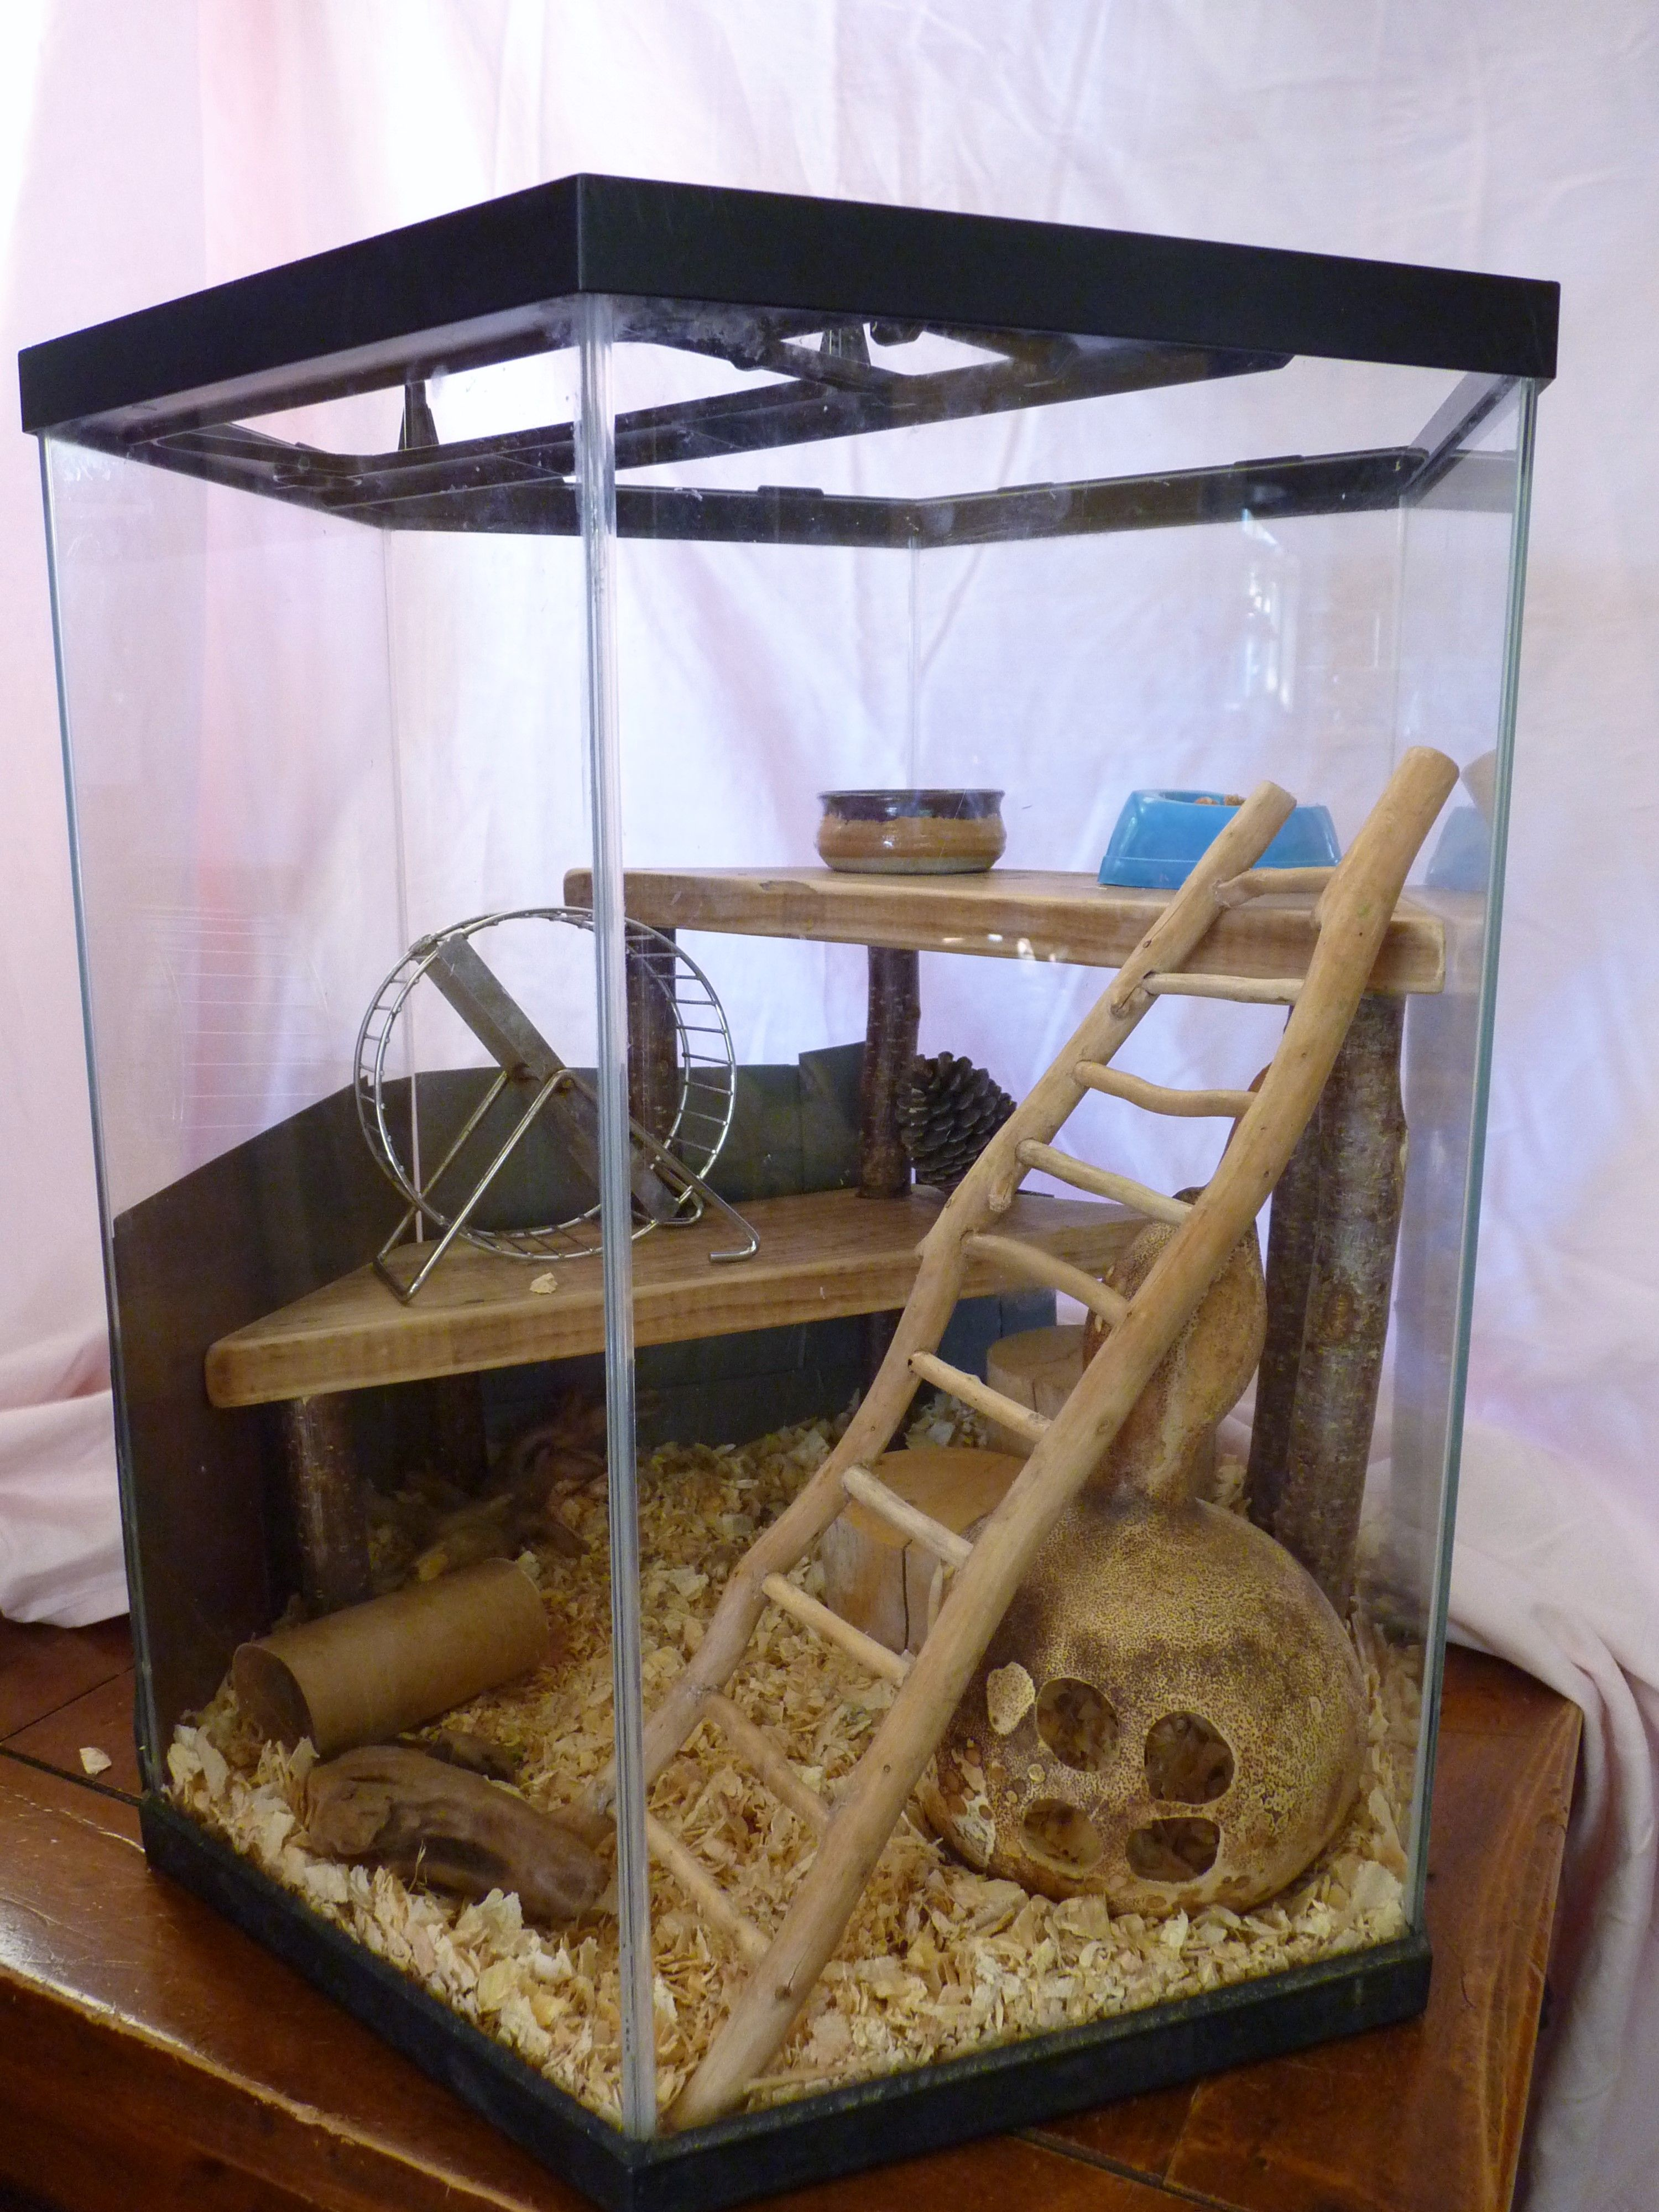 Drift Wood Ladder Two Upper Storeys And A Gourd House All In An Old Fish Tank Which Had Cracks See Duct Tape Repair Job